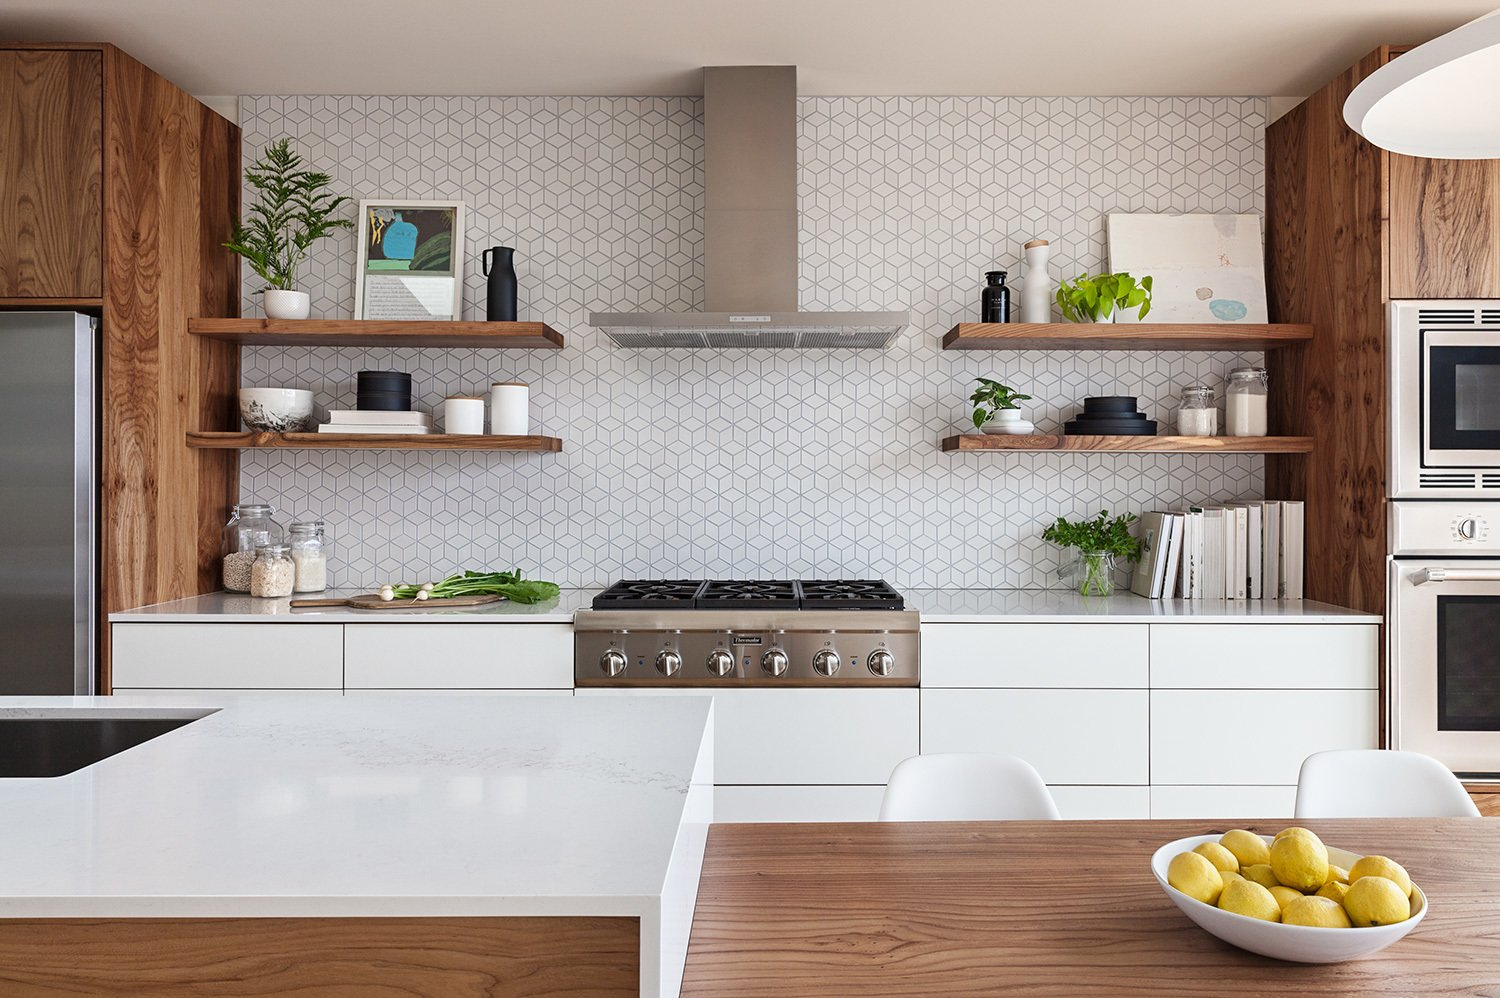 the heath ceramics wall tile backsplash was extended to full height and behind floating shelves to add texture and character to the minimal kitchen